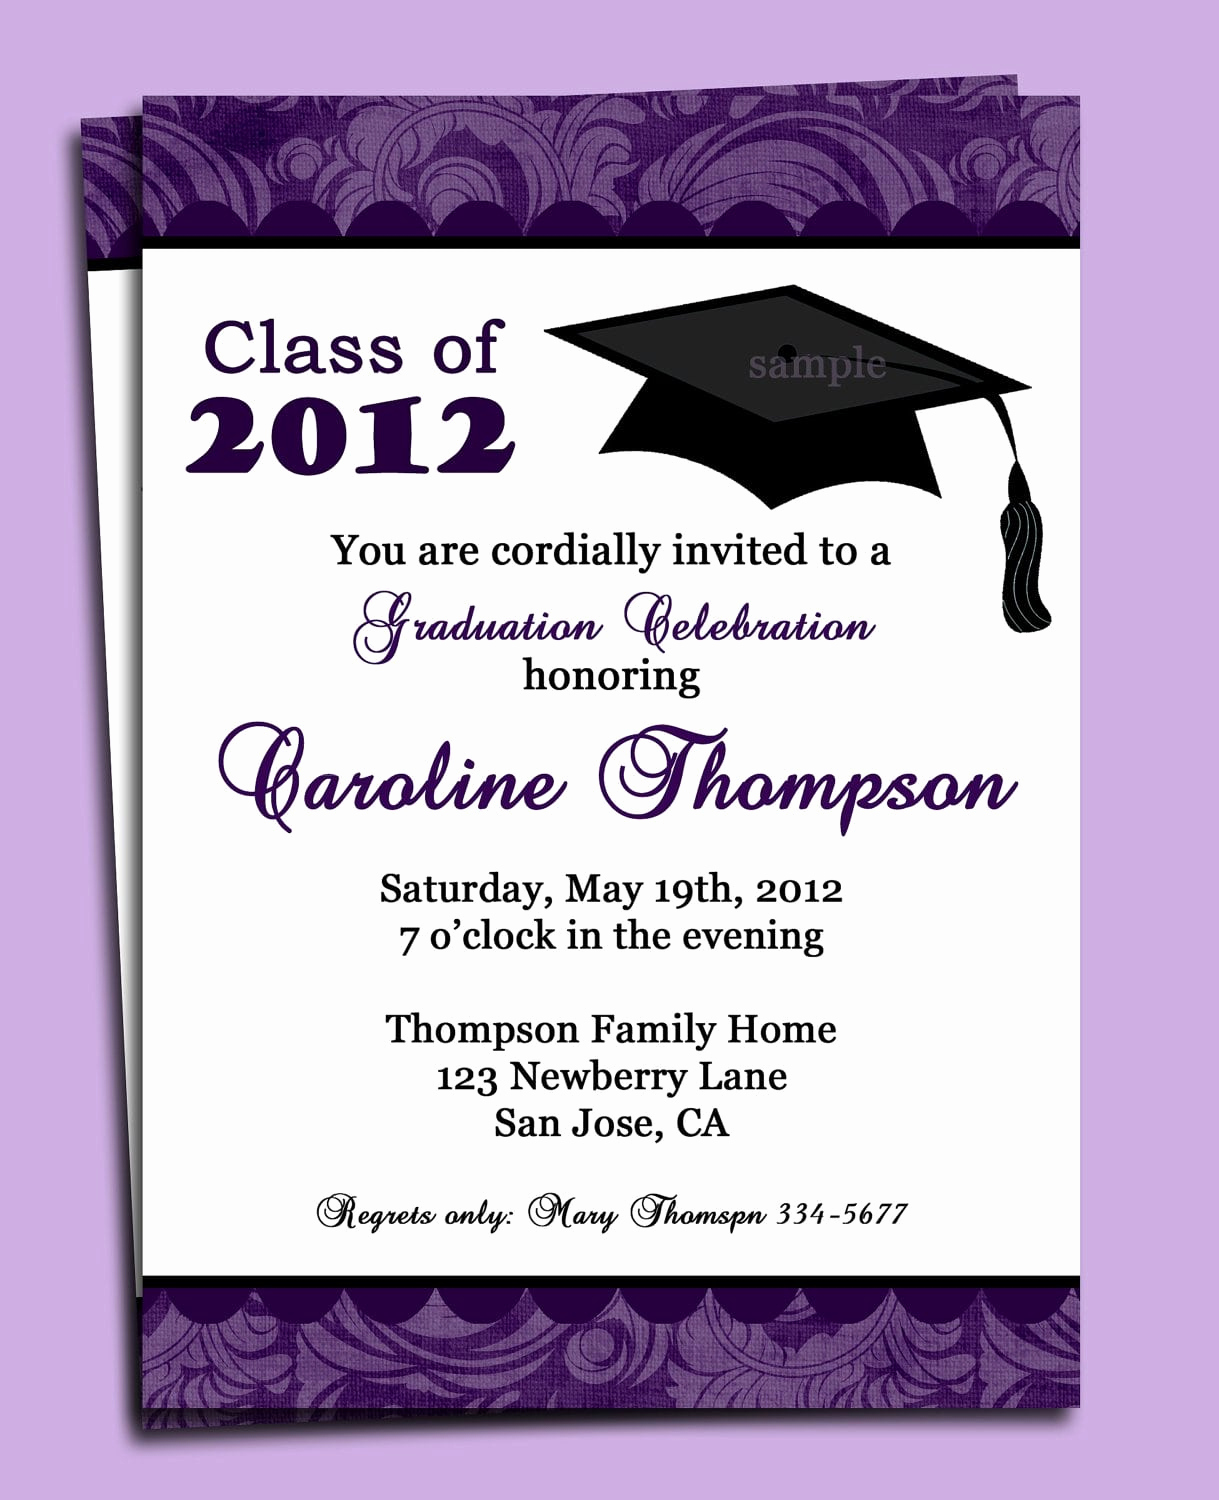 Graduation Party Invitation Messages Luxury Sample Invitation for Graduation Party